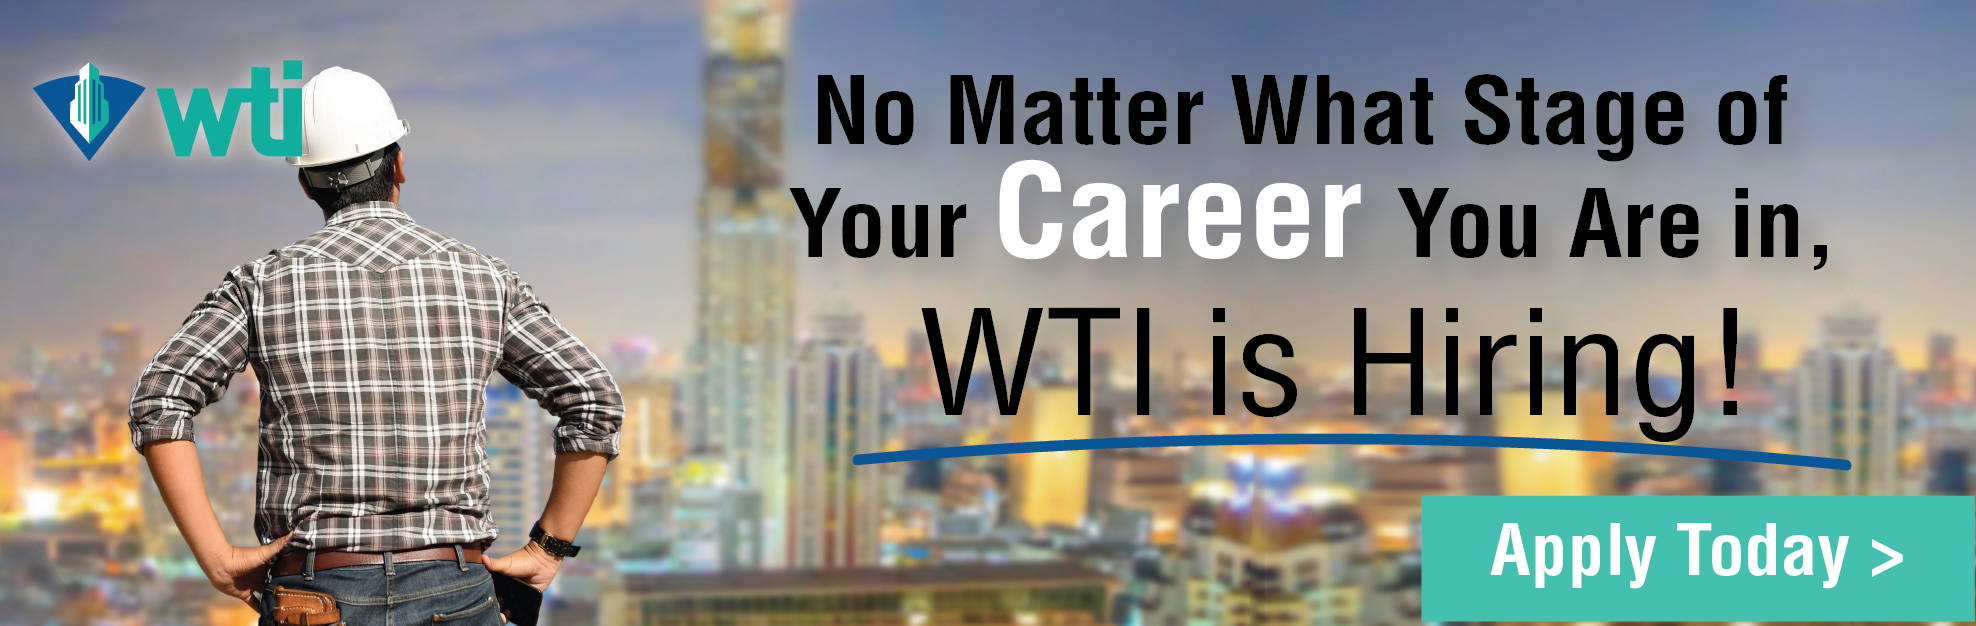 WTI - Billboard Ad - WTI is Hiring!